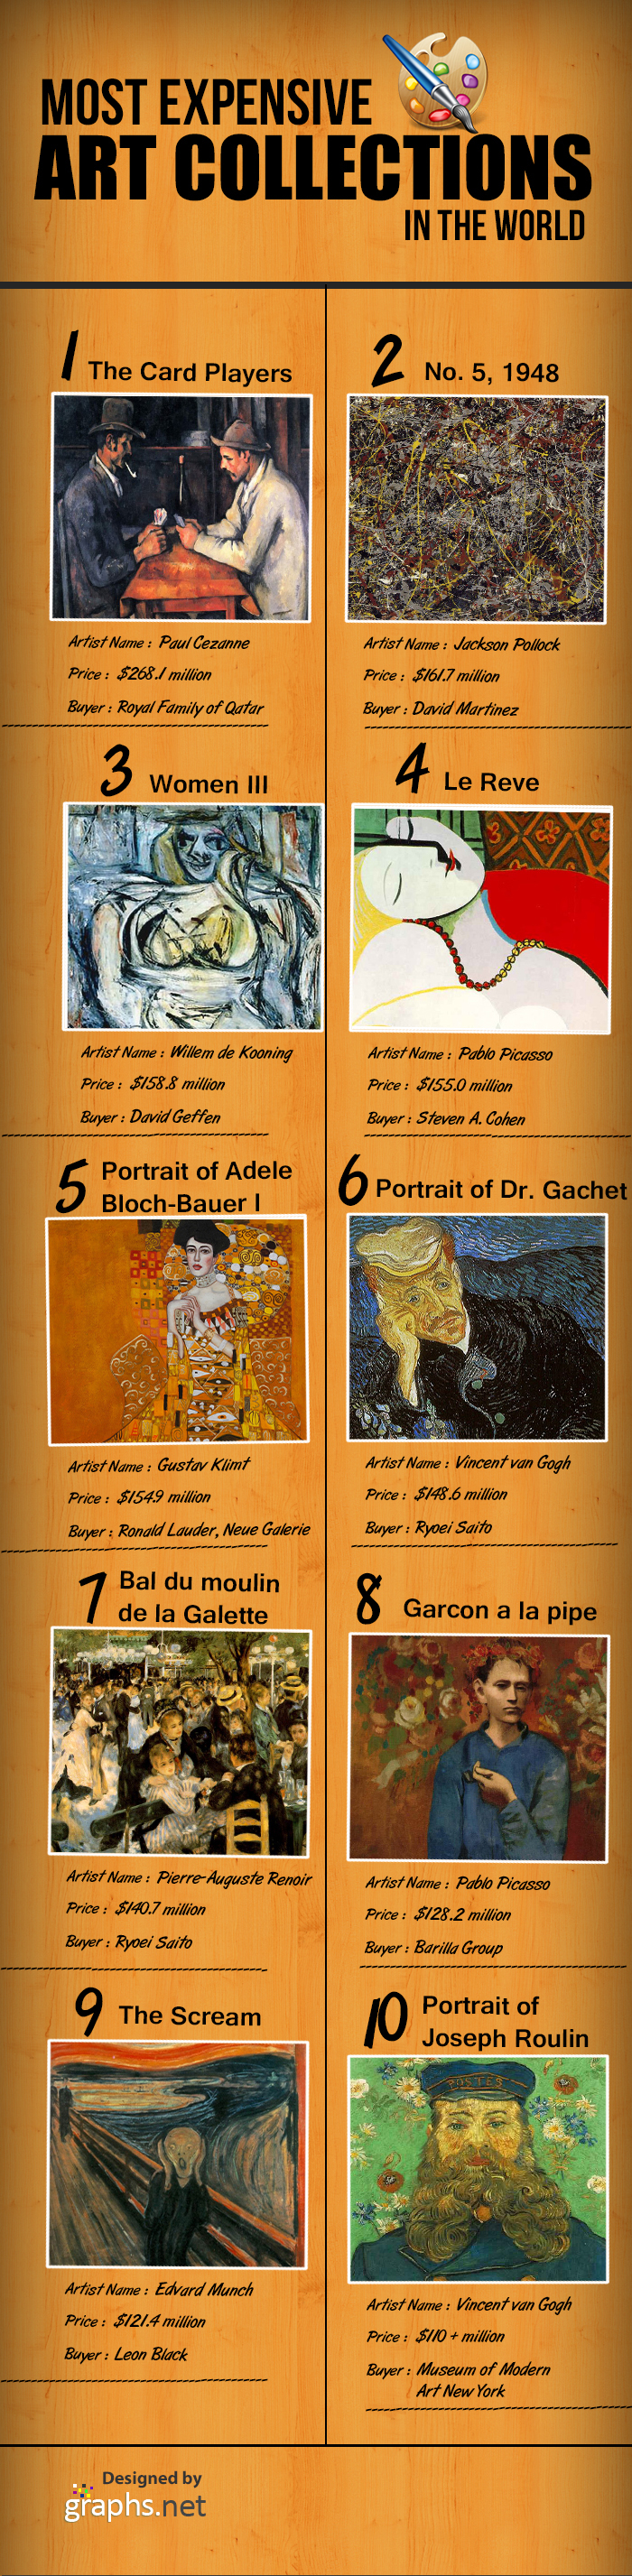 Most Expensive Art Collections in the World